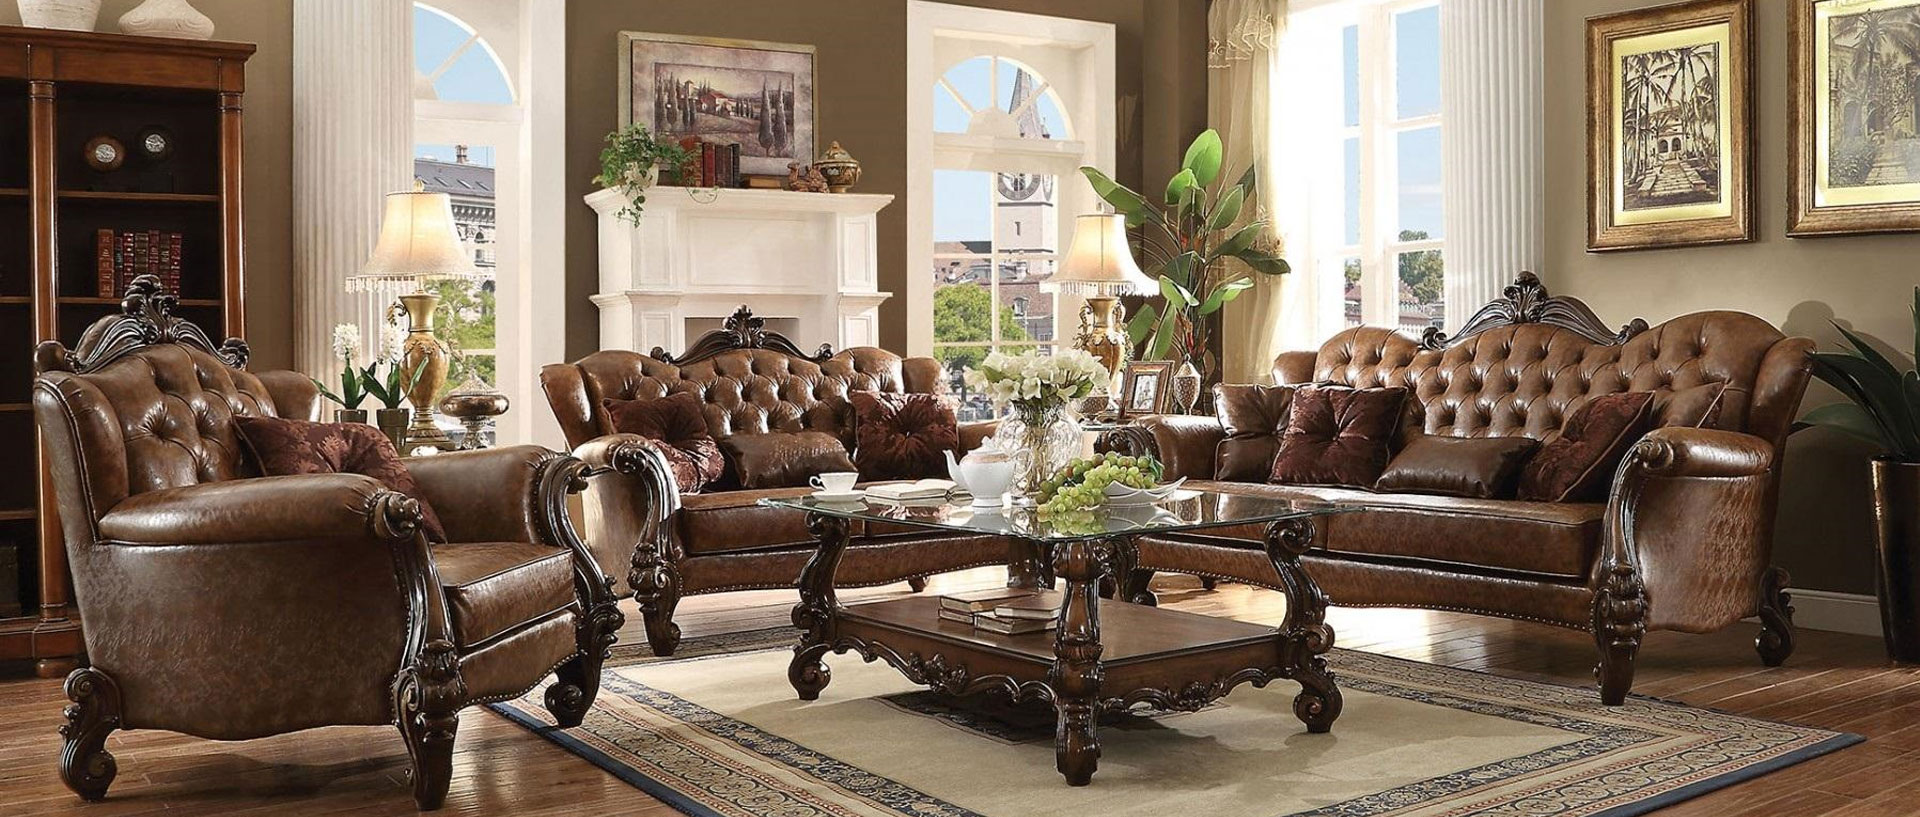 521003PC ACME Versailles 3PC Living Room Set